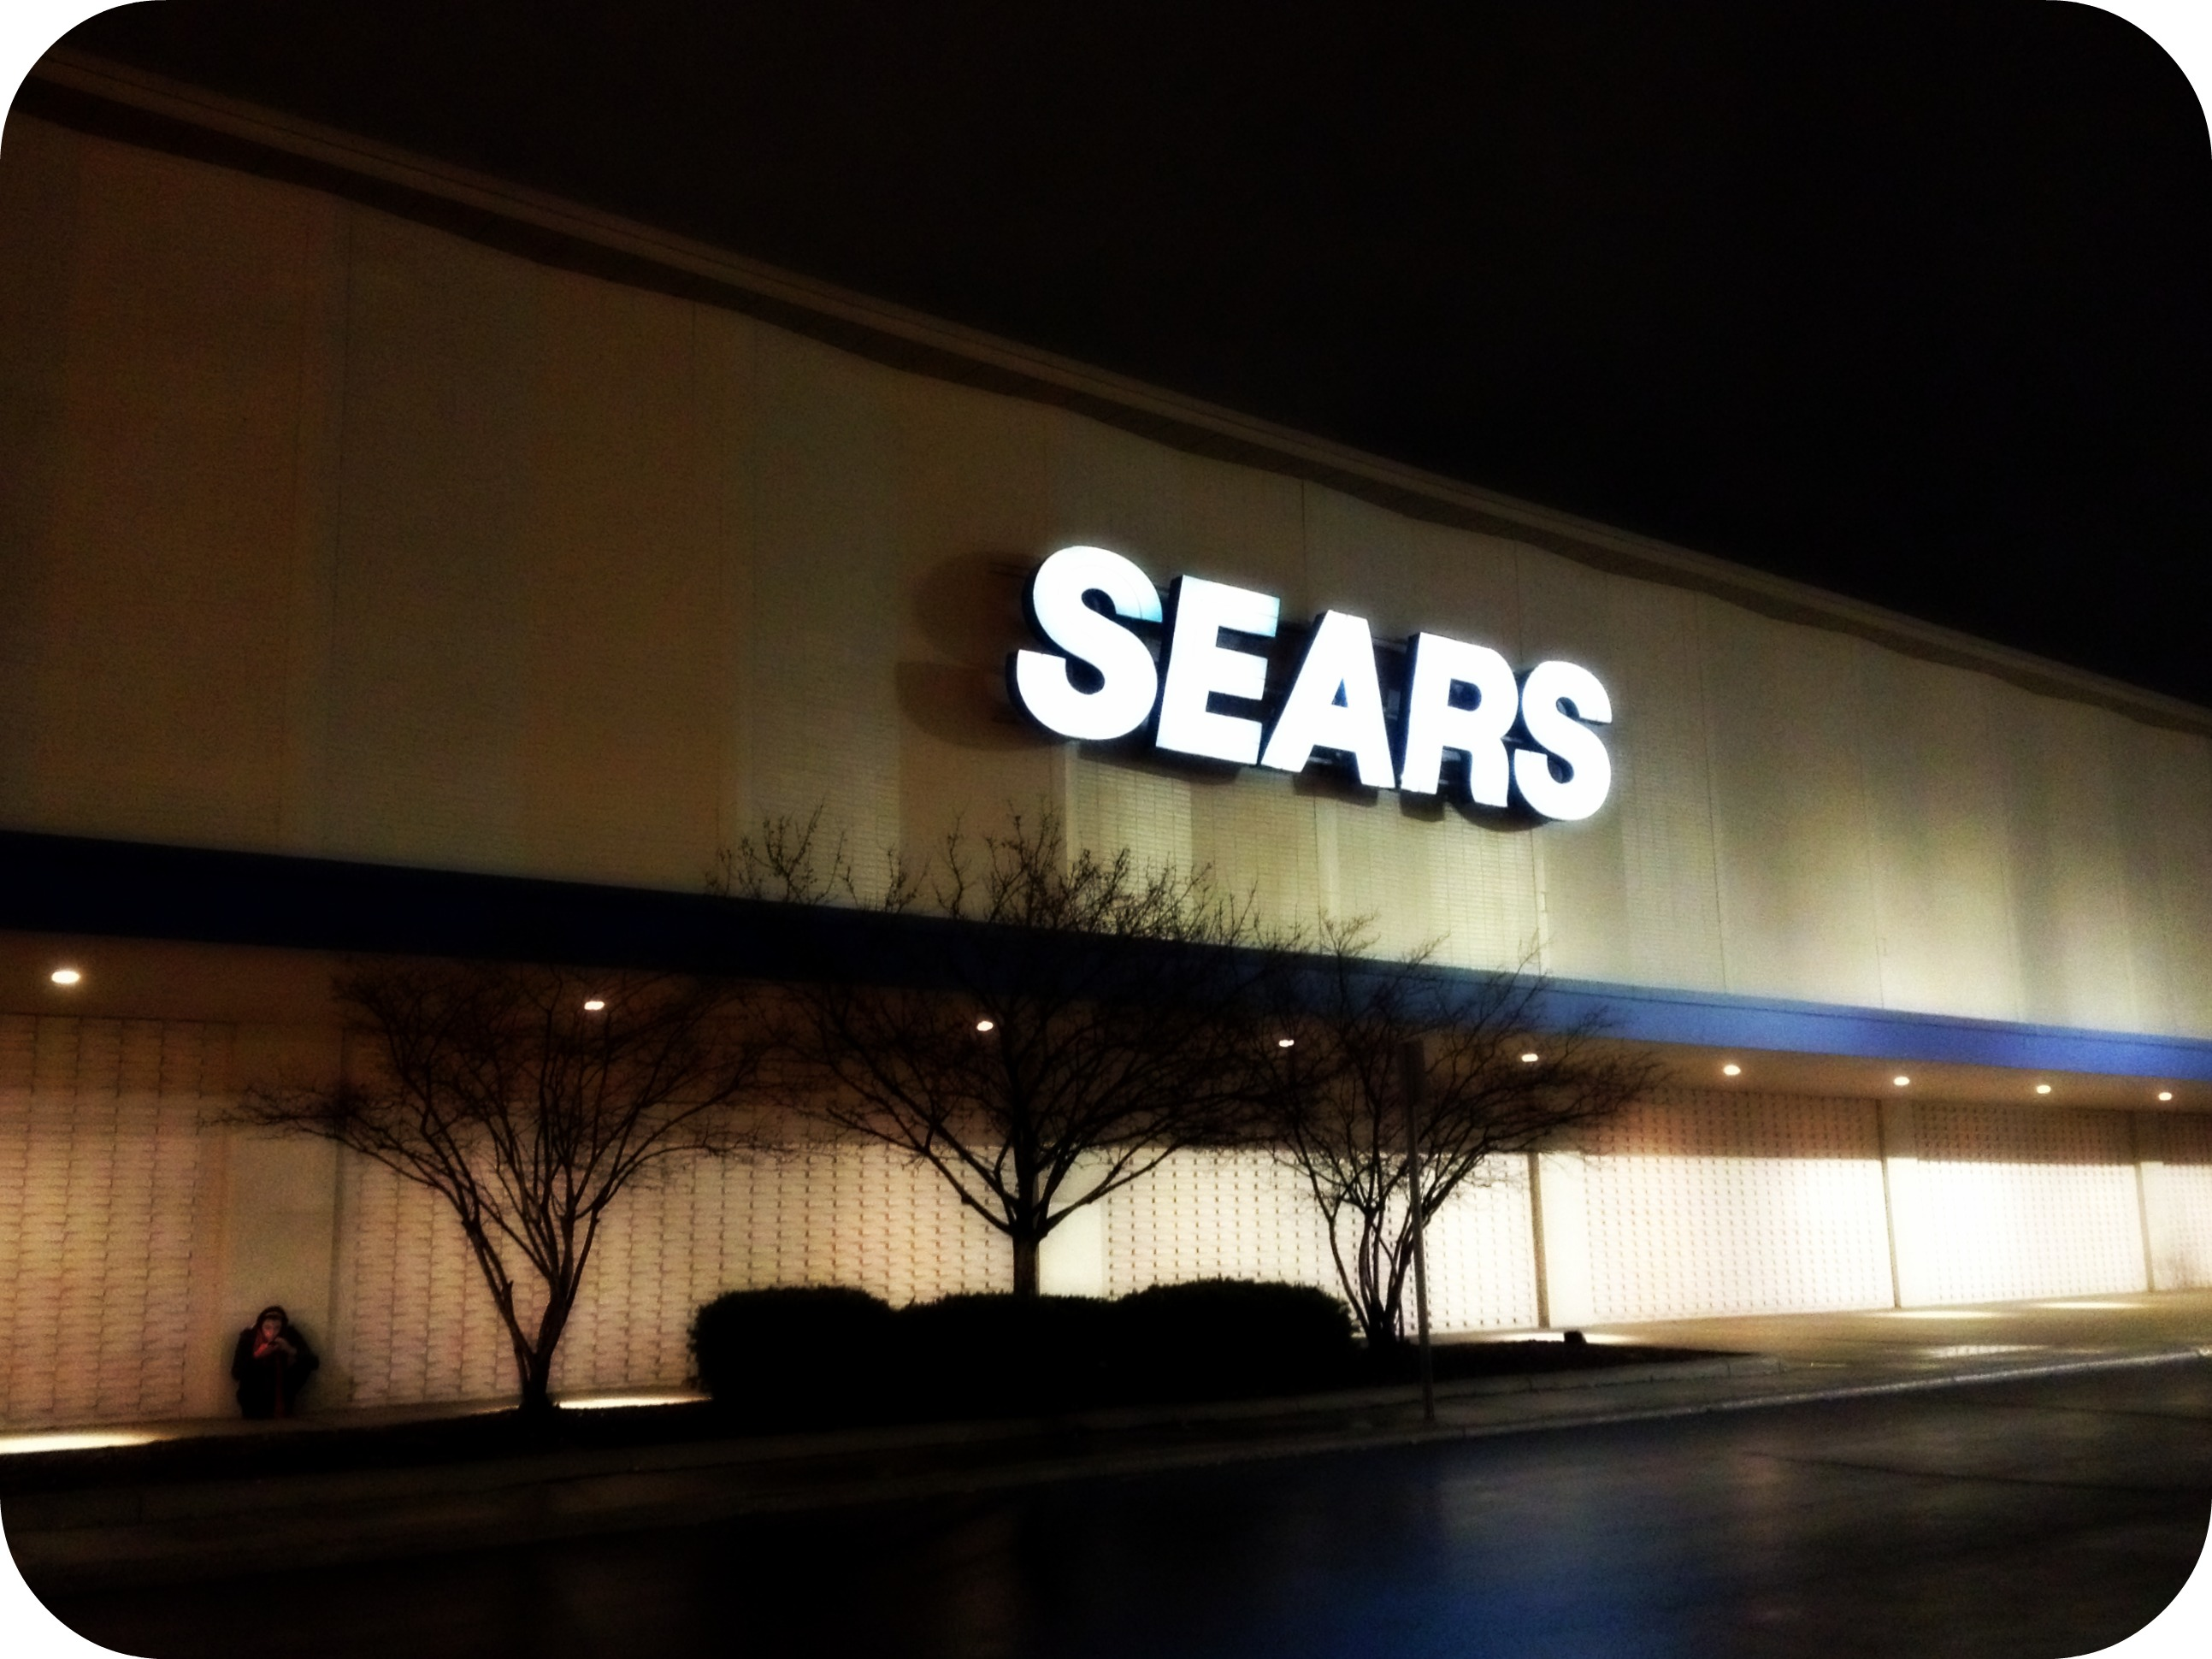 Tree Trimming: Shopping Mission. #SearsRealCheers